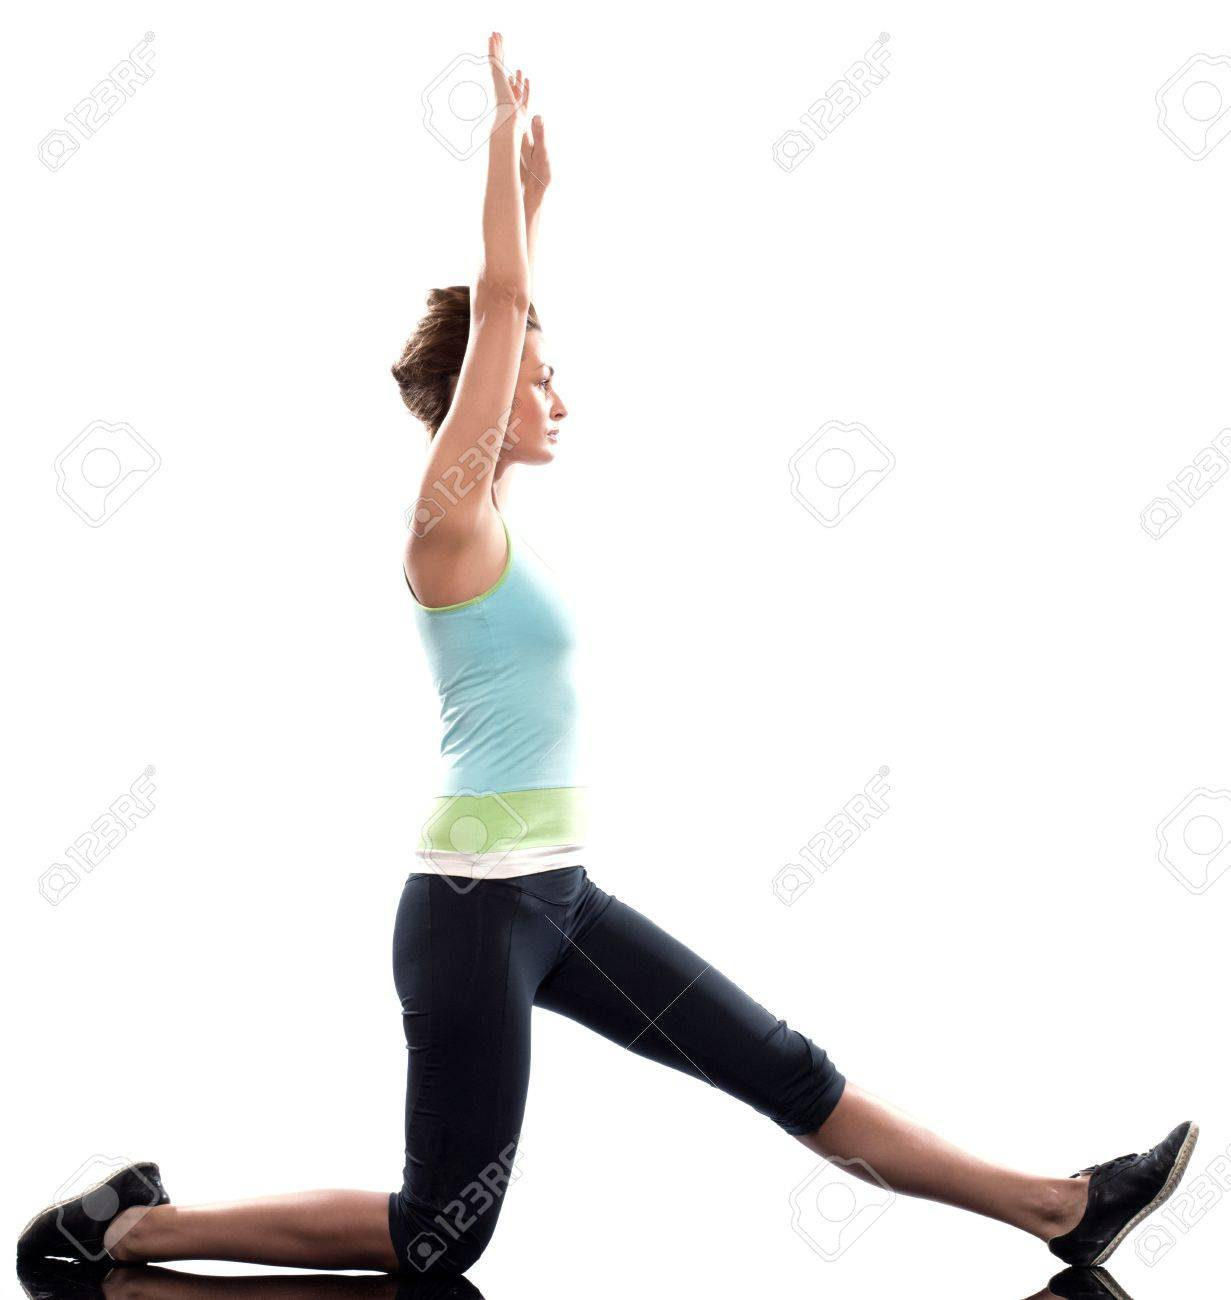 Stretching Workout Posture By A Woman On Studio White Background 1231x1300